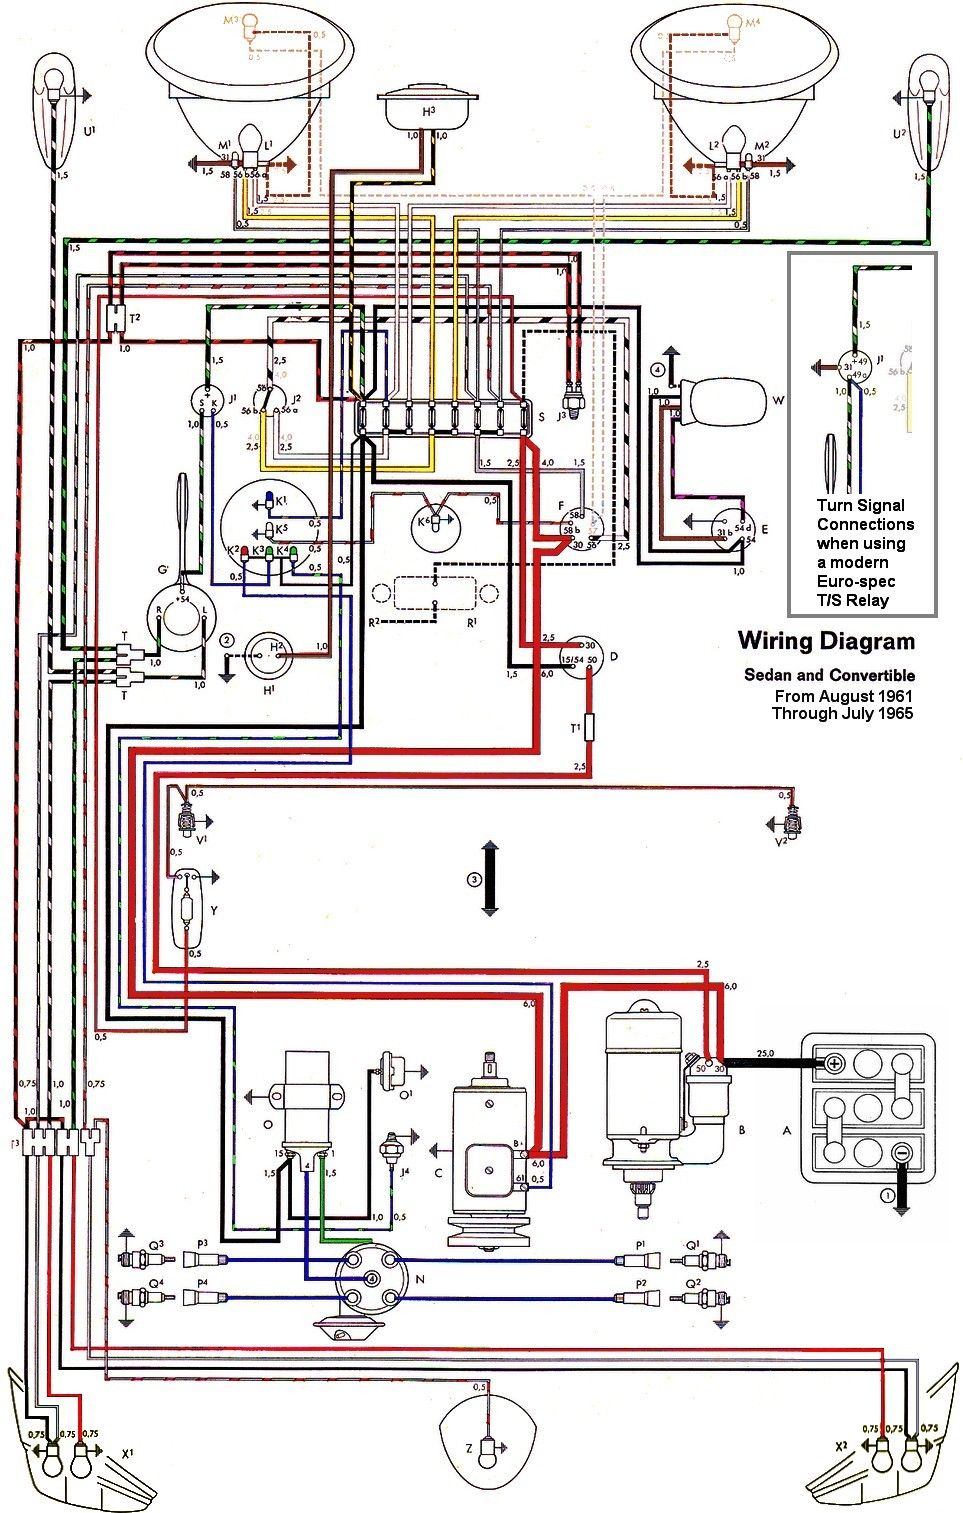 medium resolution of wiring diagram vw beetle sedan and convertible 1961 1965